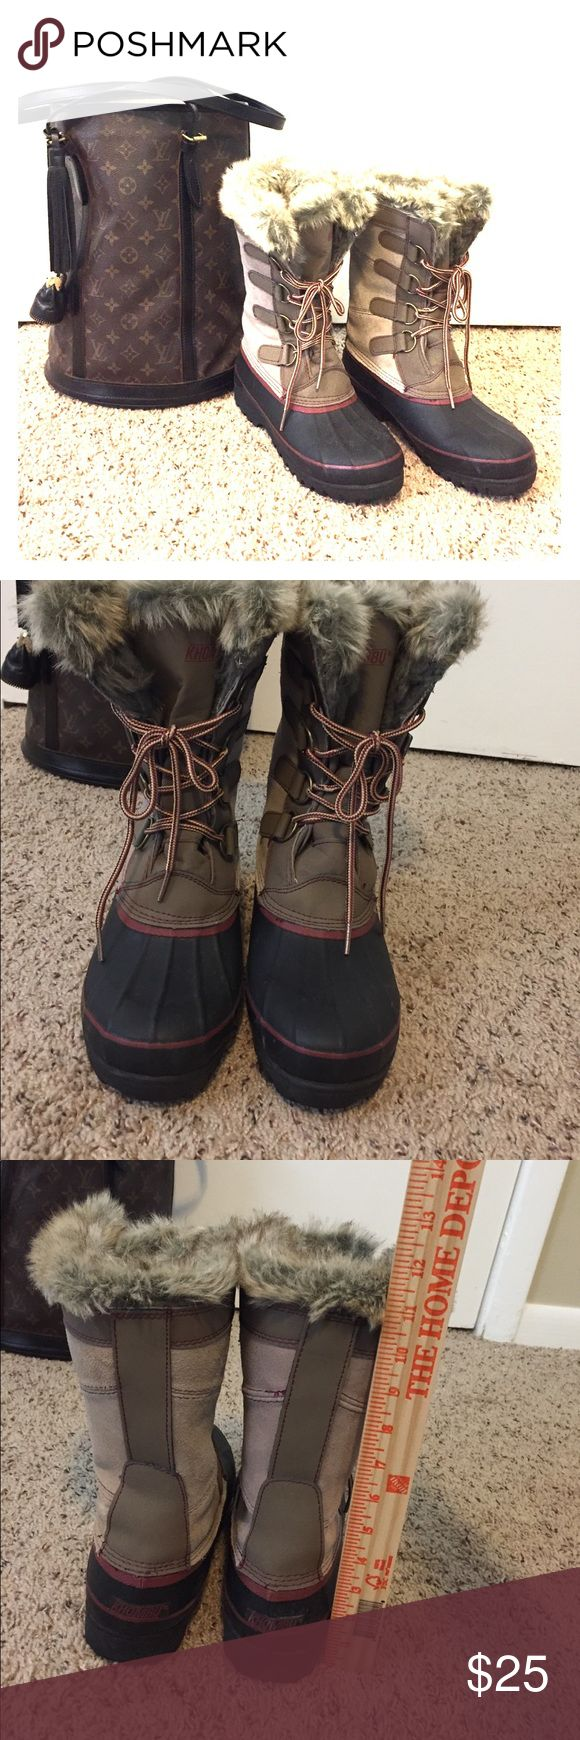 Like new WINTER boots Taupe suede shaft, black rubber duck toe design , Maroon accent thread &  rubber trims. Used one time for a few hours. No box Khombu Shoes Winter & Rain Boots